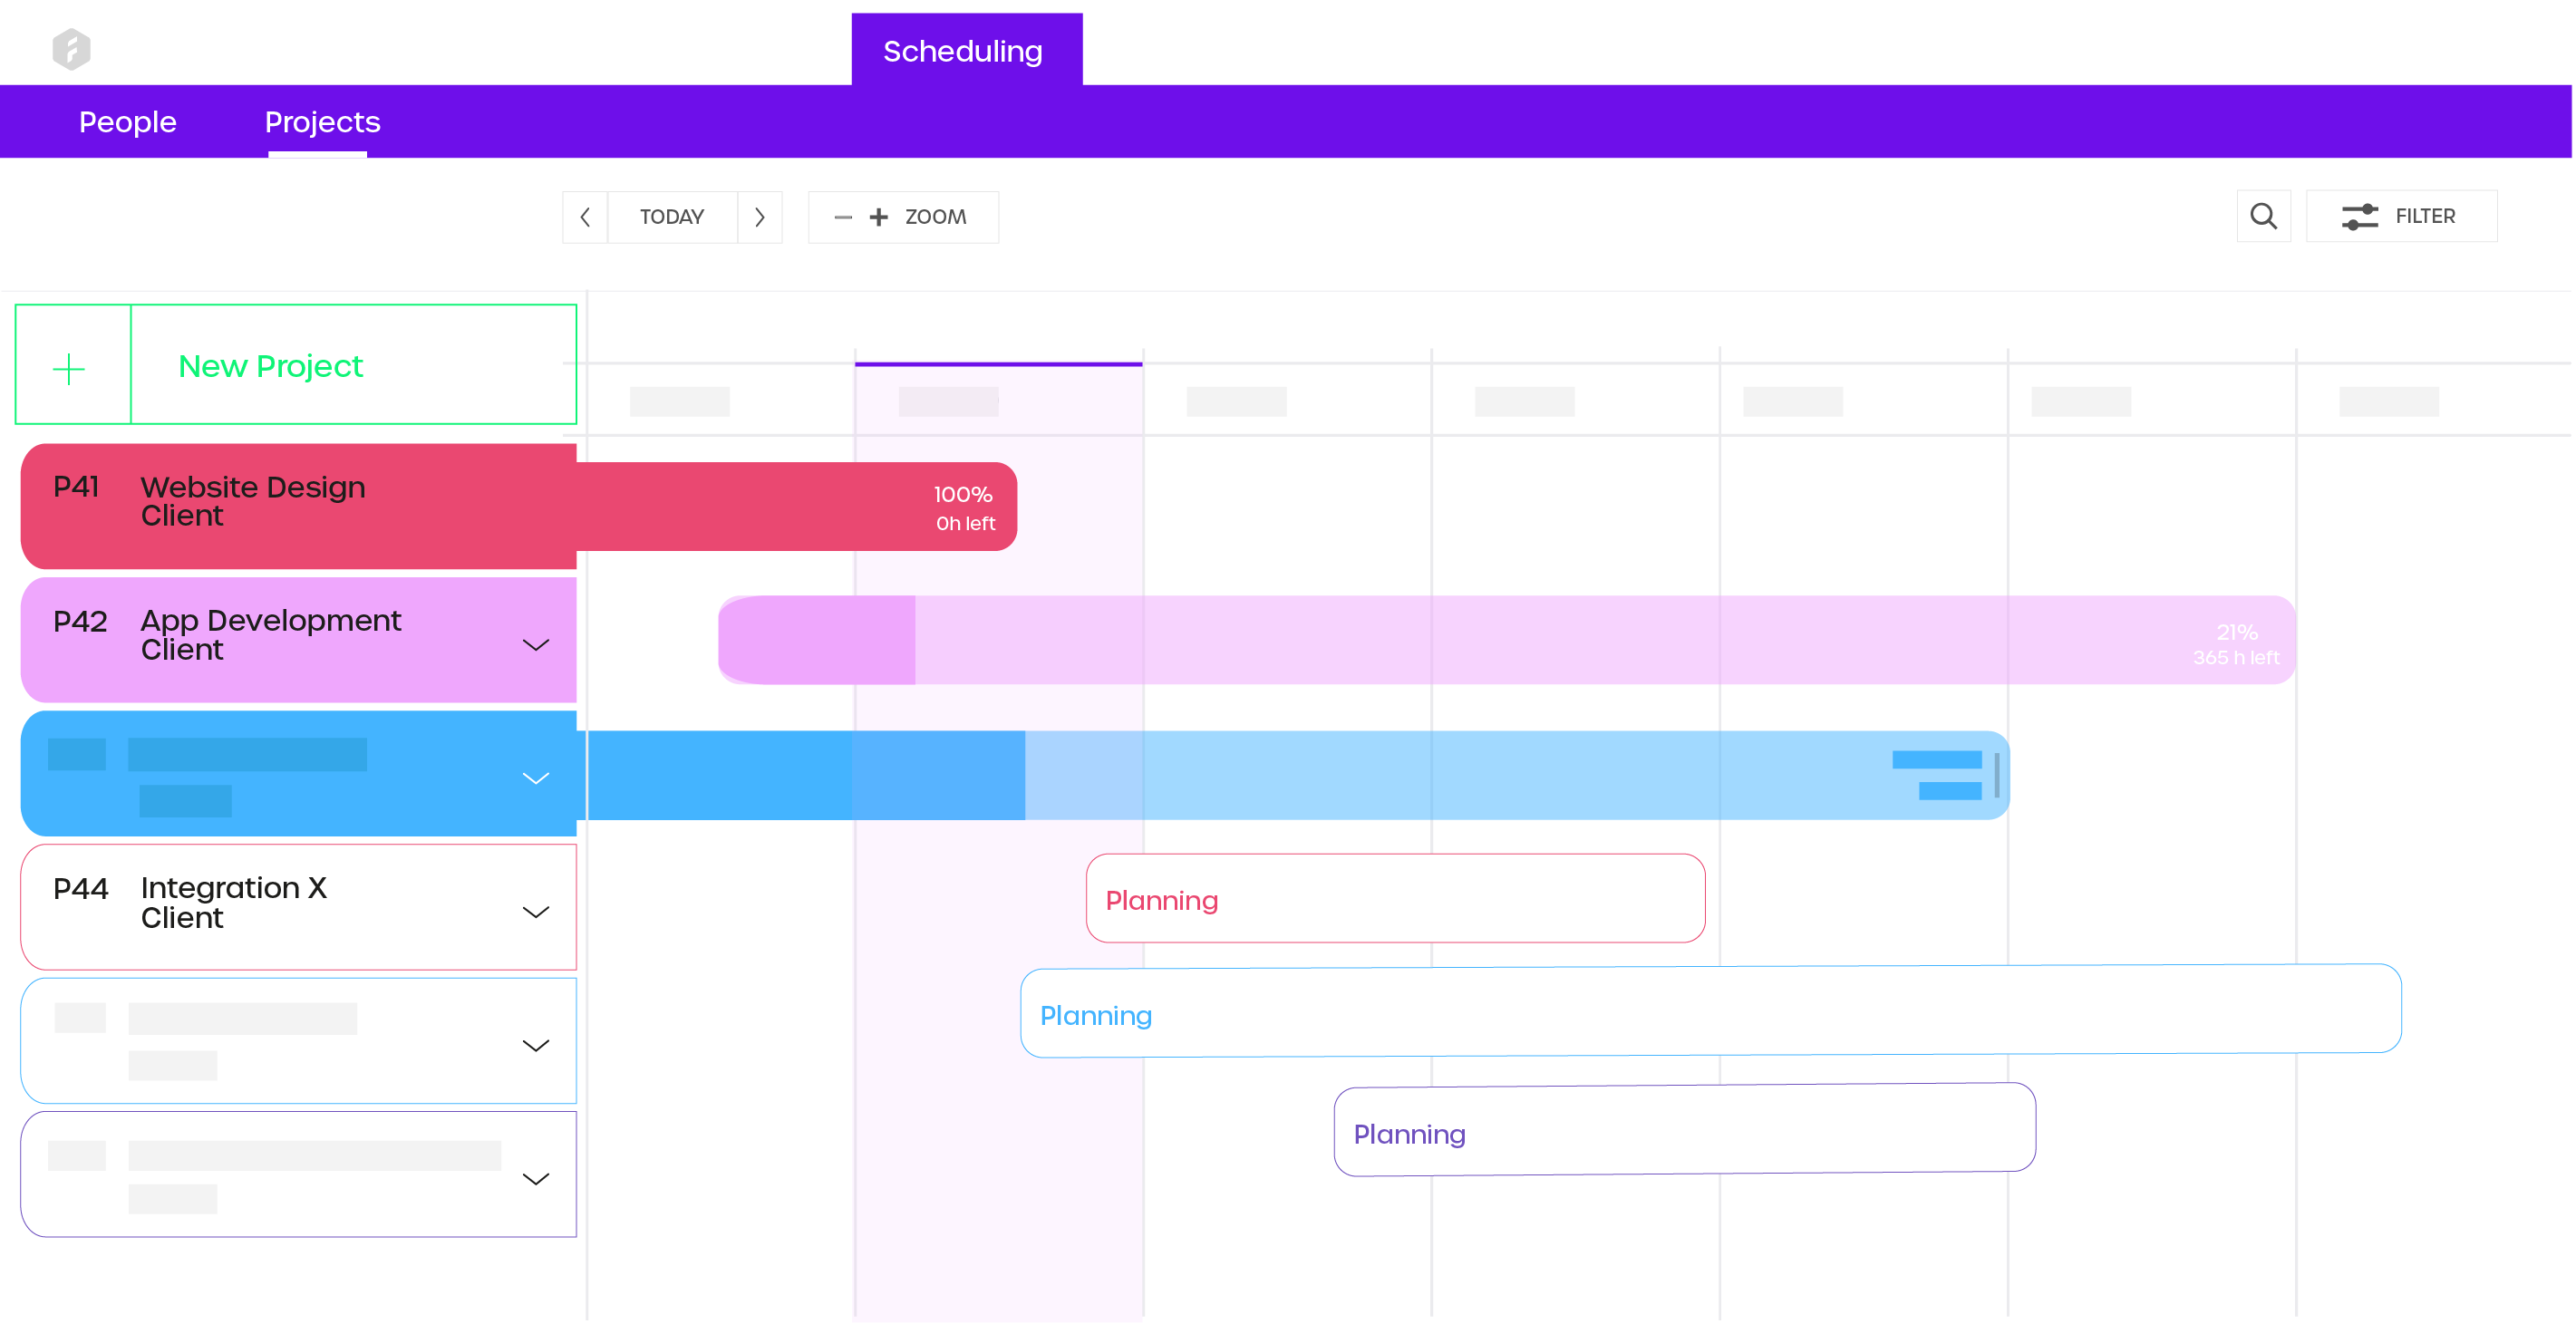 Visually plan future projects and see how they affect your project portfolio. Monitor running projects and track the progress in real-time.